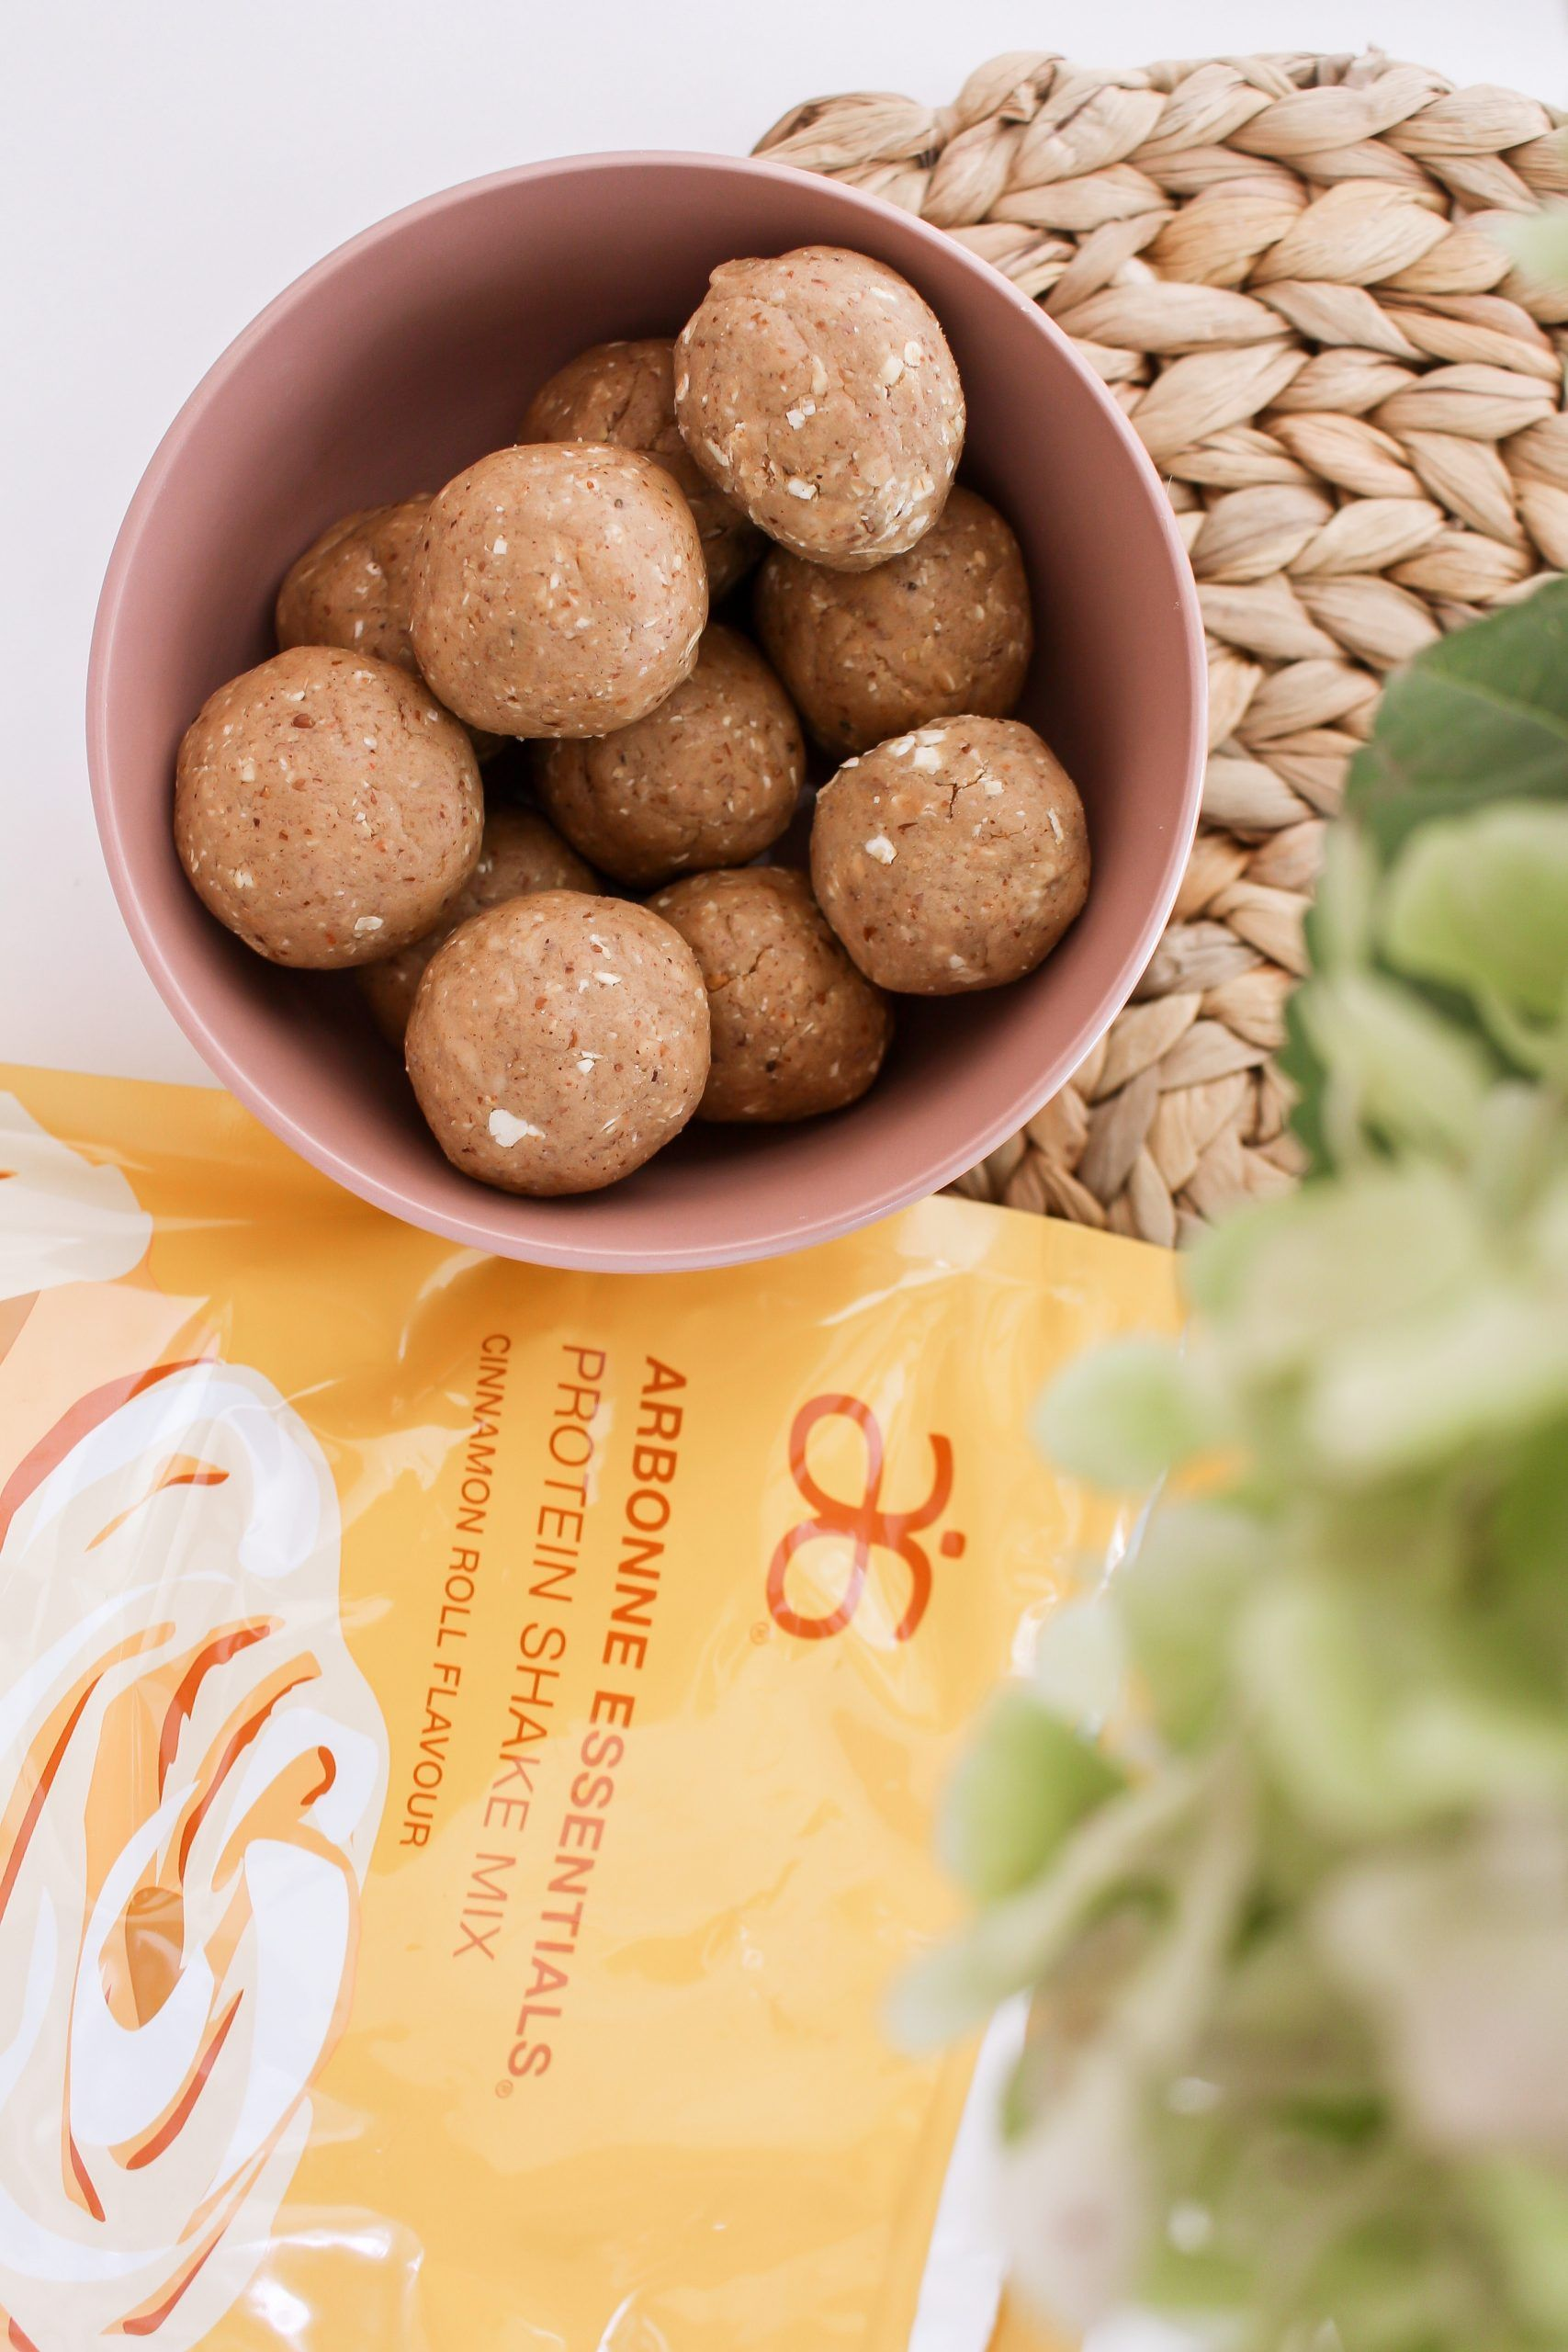 Almond Ball Cinnamon Protein Recipe Cinnamon Almond Protein Ball Recipe Protein Balls Are A Great Healthy Snack You Can Meal Prep Fr Protein Alm Ball